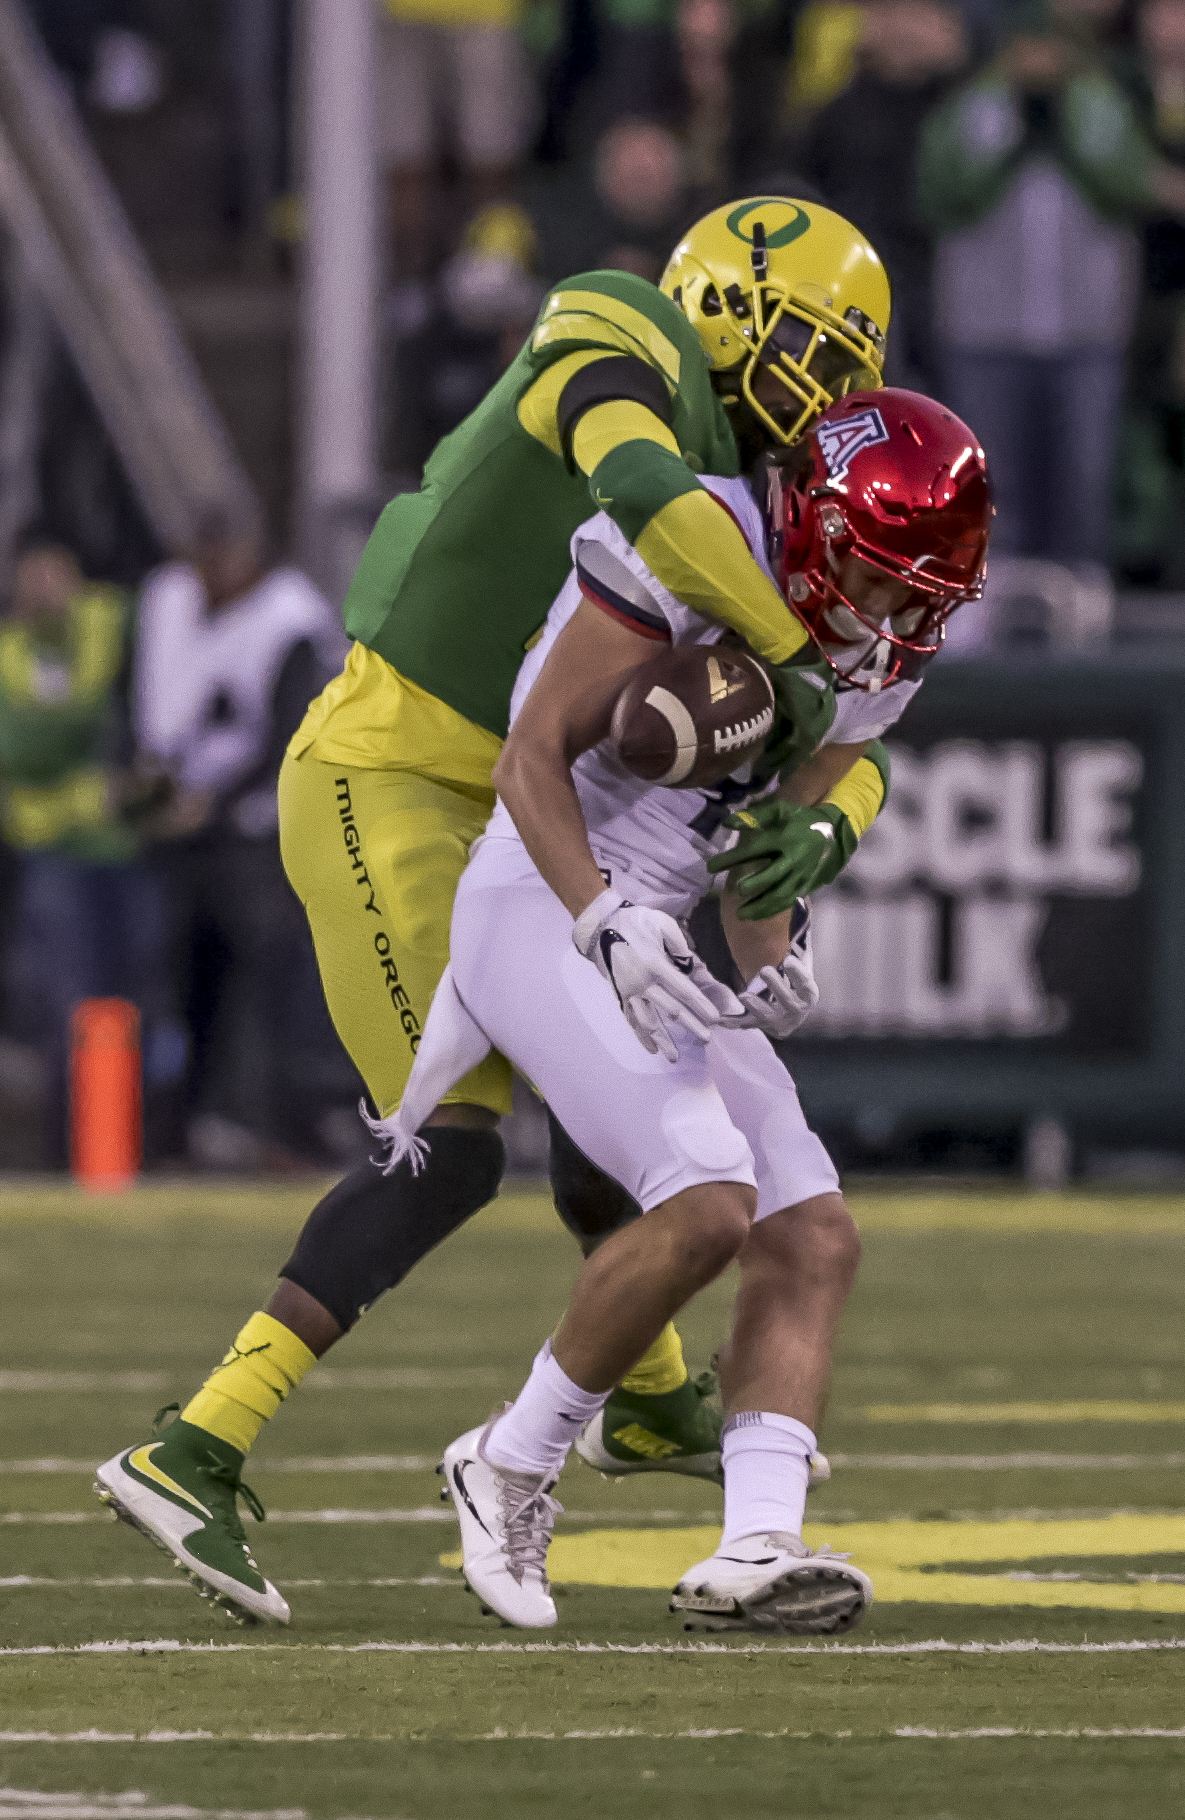 Oregon safety Tyree Robinson (#2) breaks up a pass intended for Arizona wide receiver Tony Ellison (#9). The Oregon Ducks lead the Arizona Wildcats 28 to 21 at the end of the first half at Autzen Stadium on Saturday, November 18, 2017. Photo by Ben Lonergan, Oregon News Lab